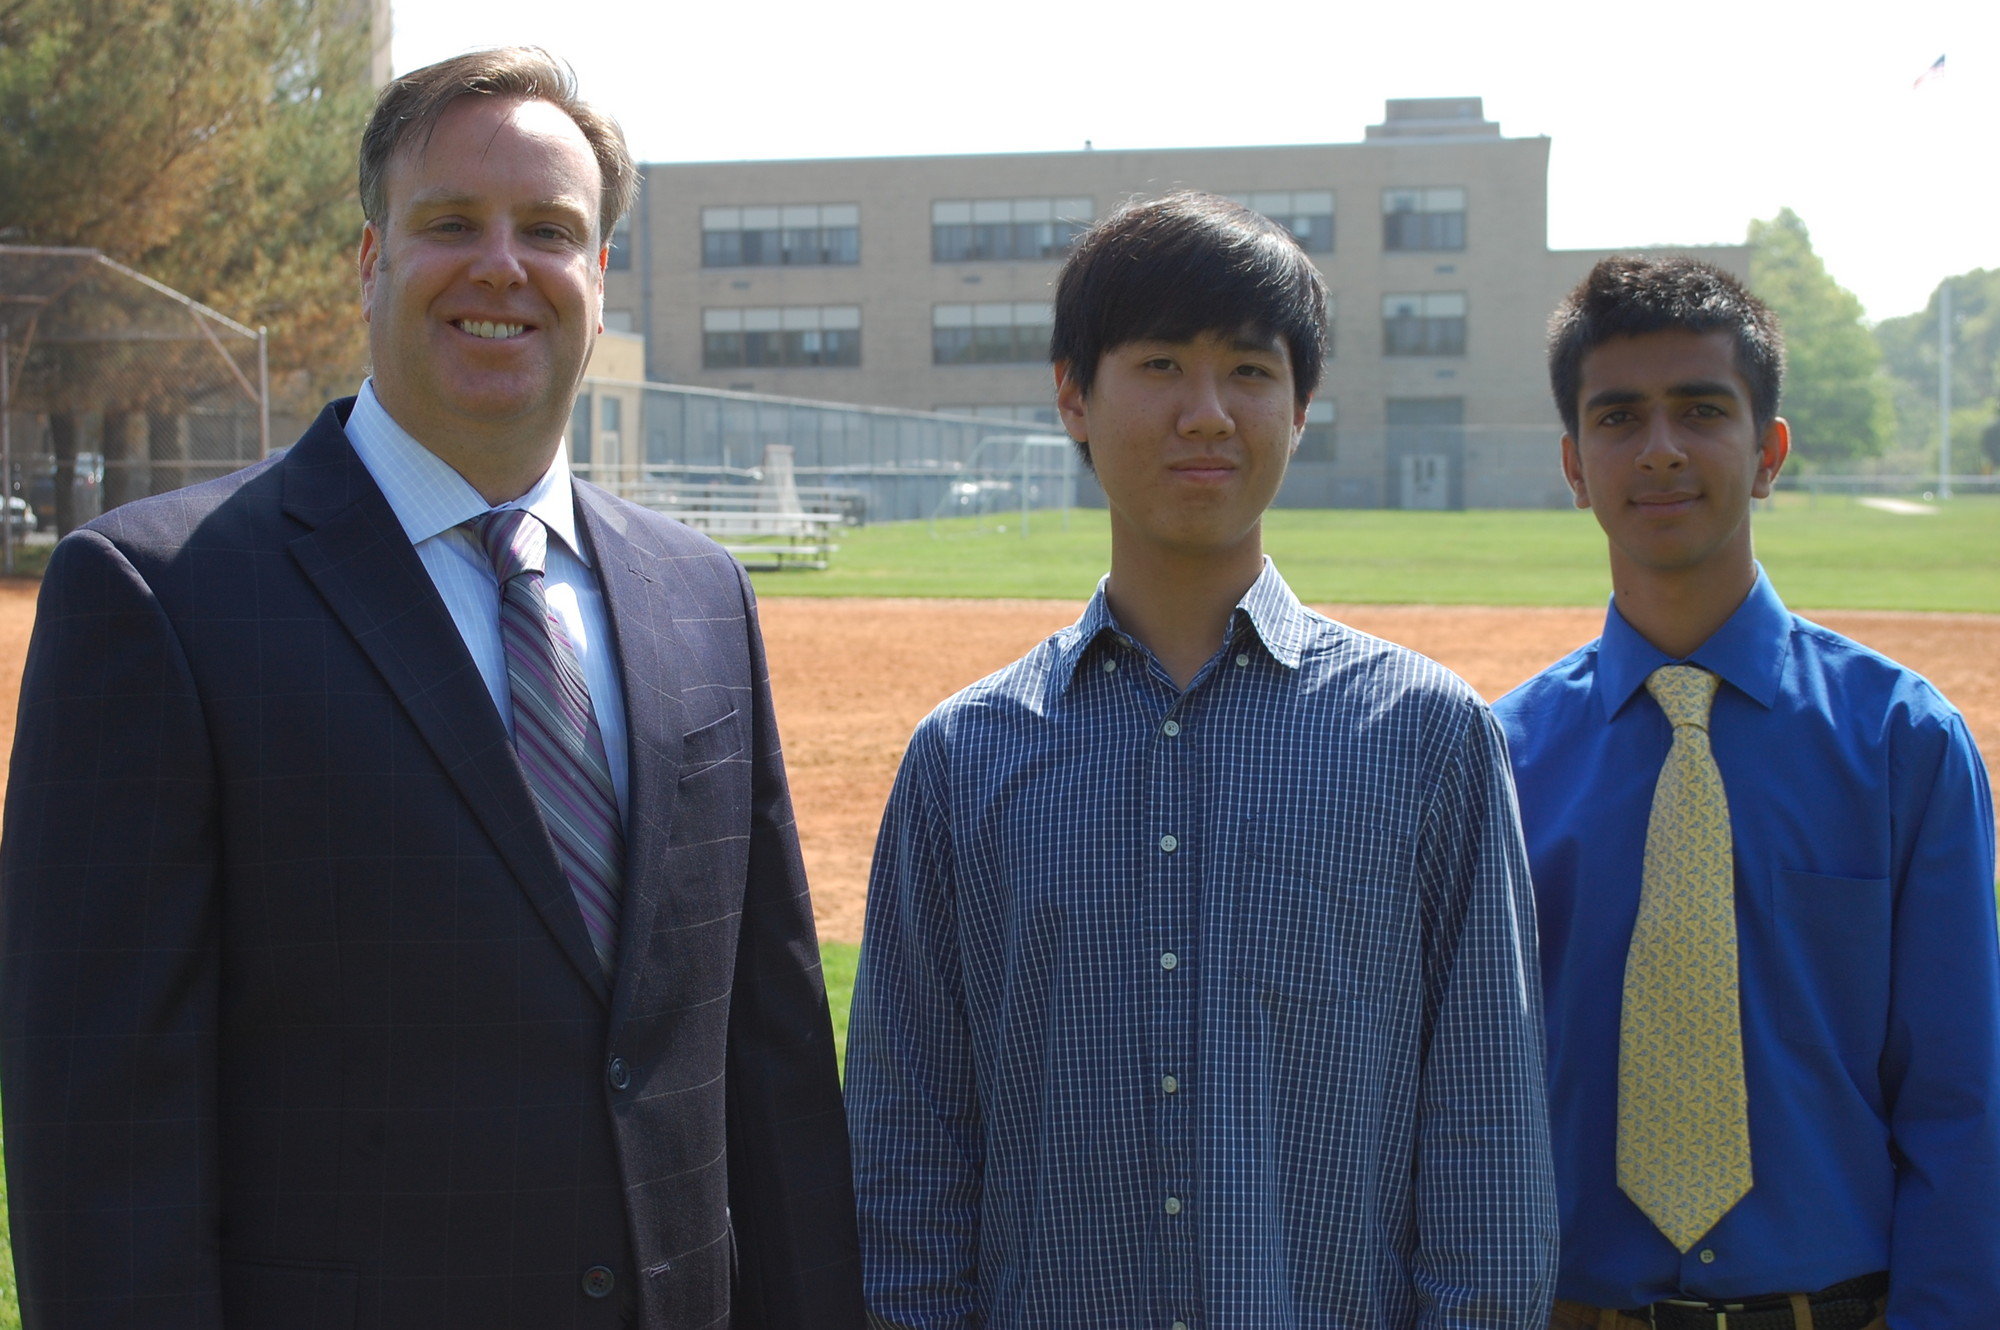 Jason Shen, center, and Rohan Motwani, right, are the top graduates of Central High School's class of 2013. They are joined by Superintendent Dr. Bill Heidenreich.